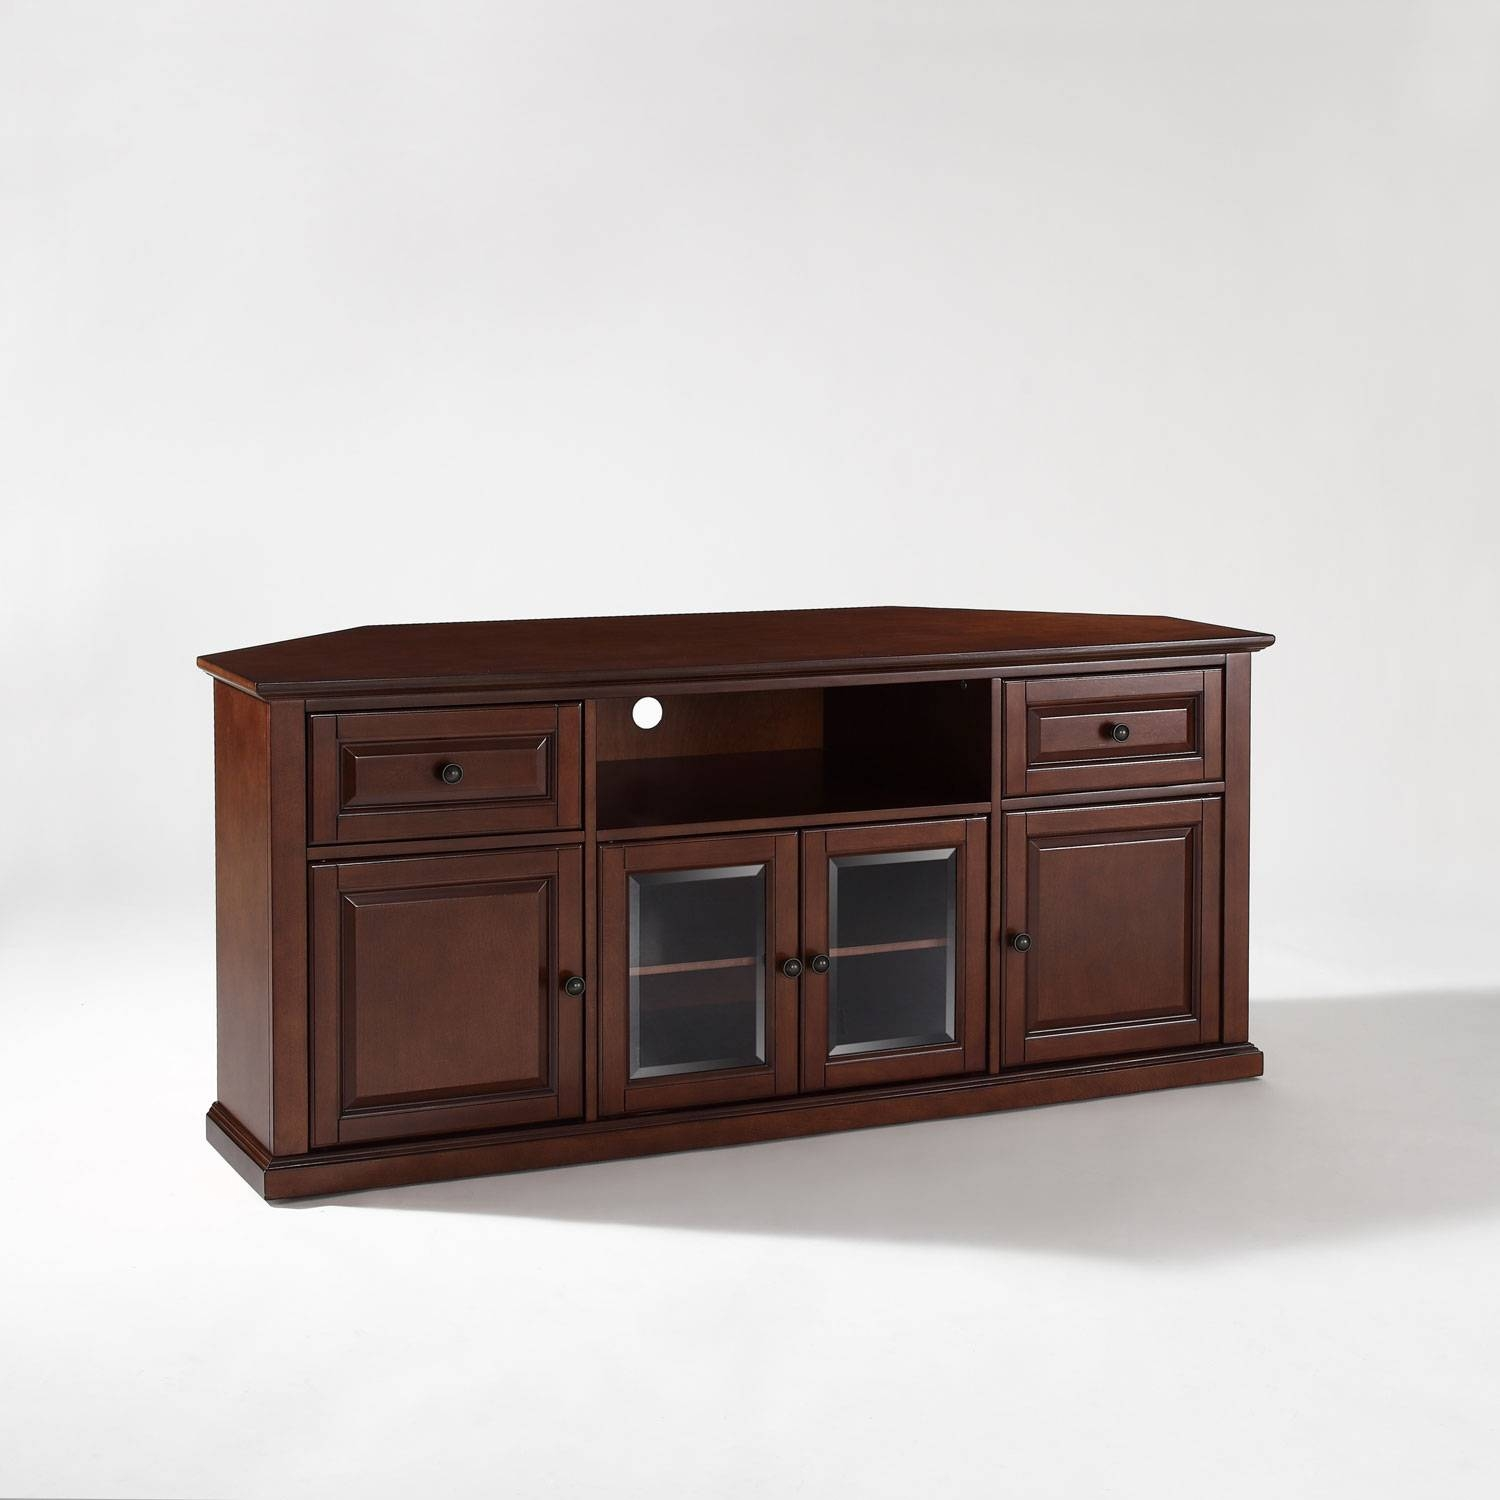 60 Inch Corner Tv Stand In Vintage Mahogany Crosley Furniture Throughout Real Wood Corner Tv Stands (Photo 11 of 15)